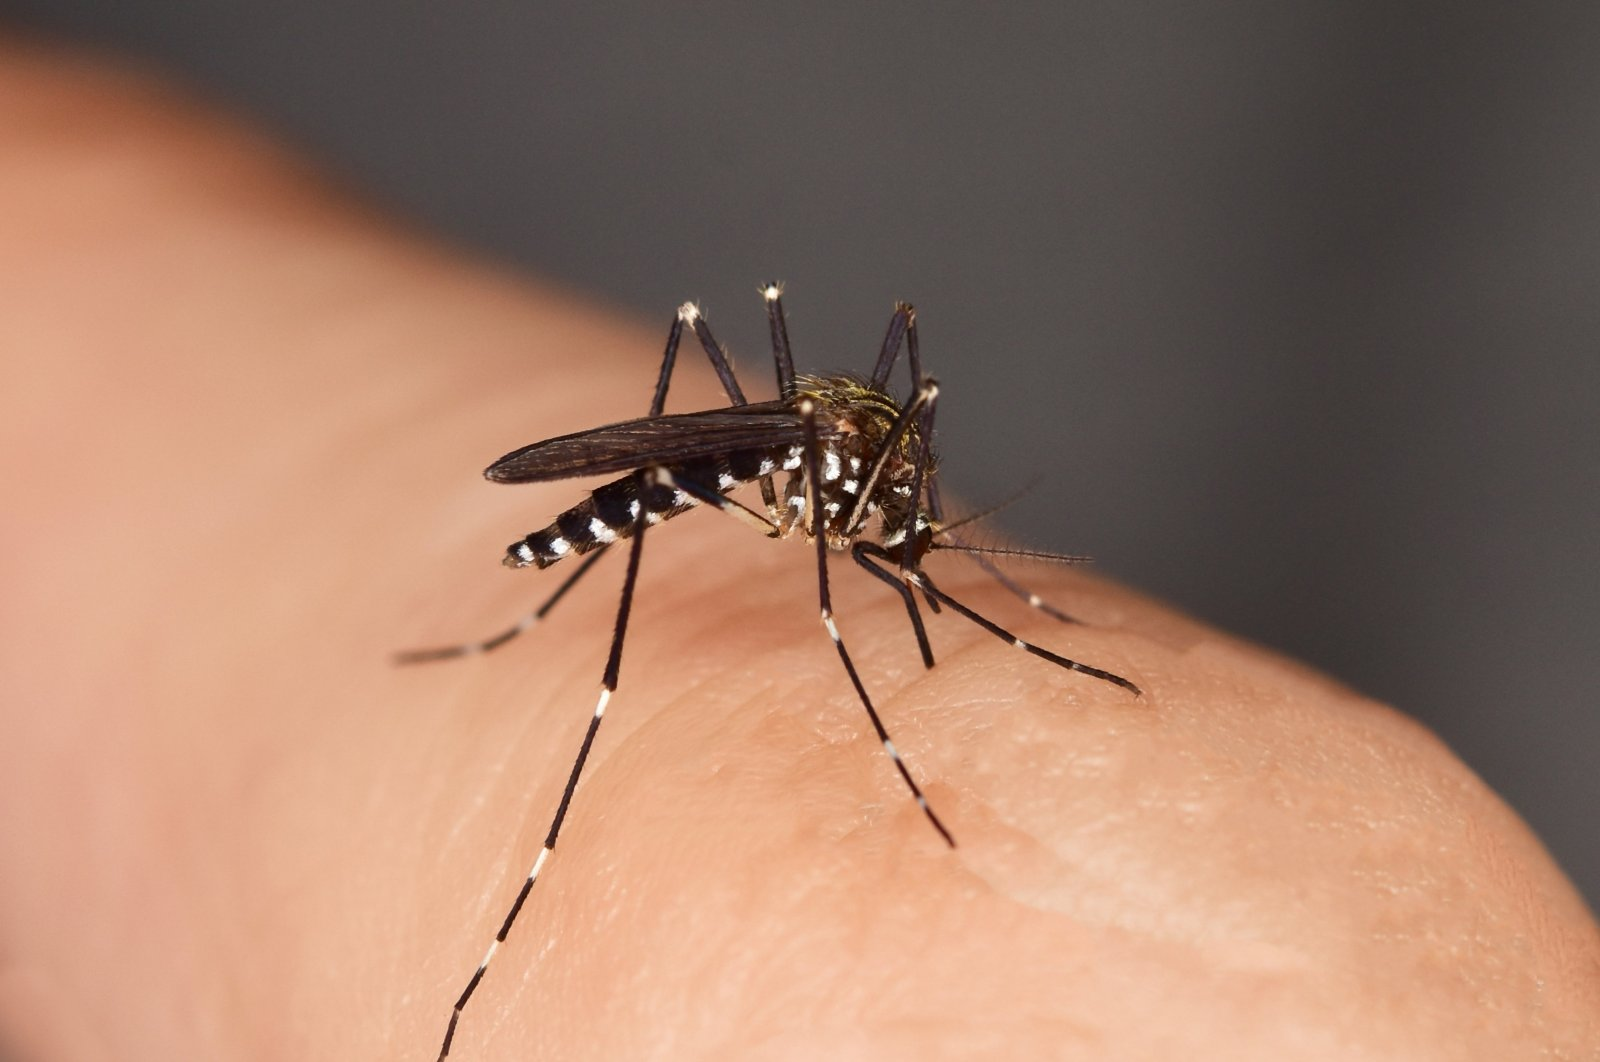 Asian tiger mosquitos can carry diseases ranging from Zika to dengue. (iStock Photo)